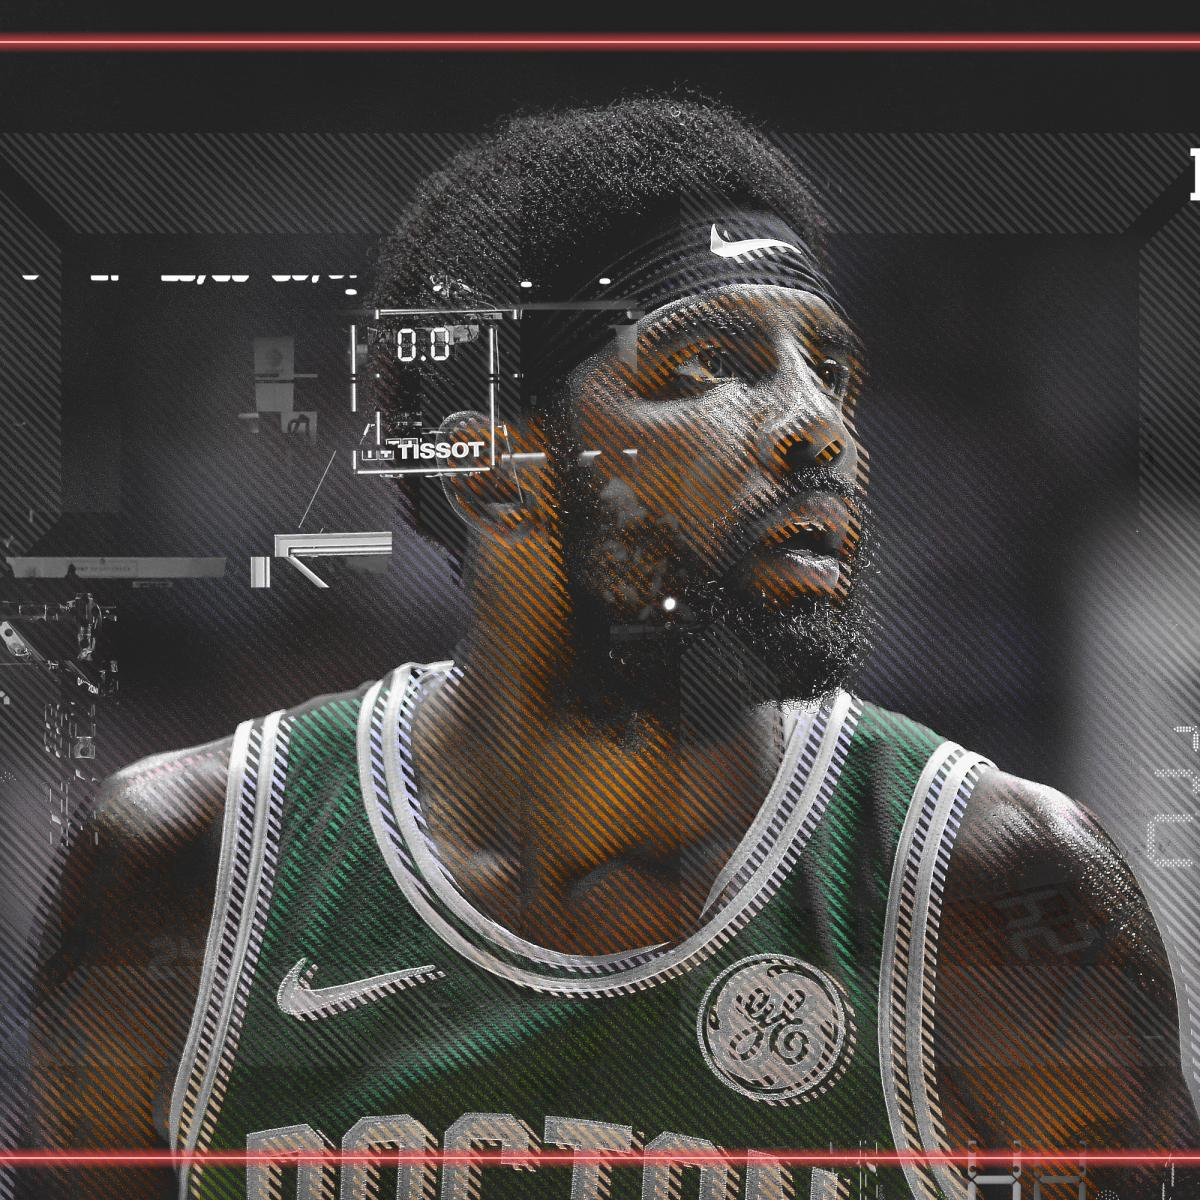 buy popular 80dcf 0f686 It s Not What Kyrie Irving Sees, It s How He Sees It   Bleacher Report    Latest News, Videos and Highlights